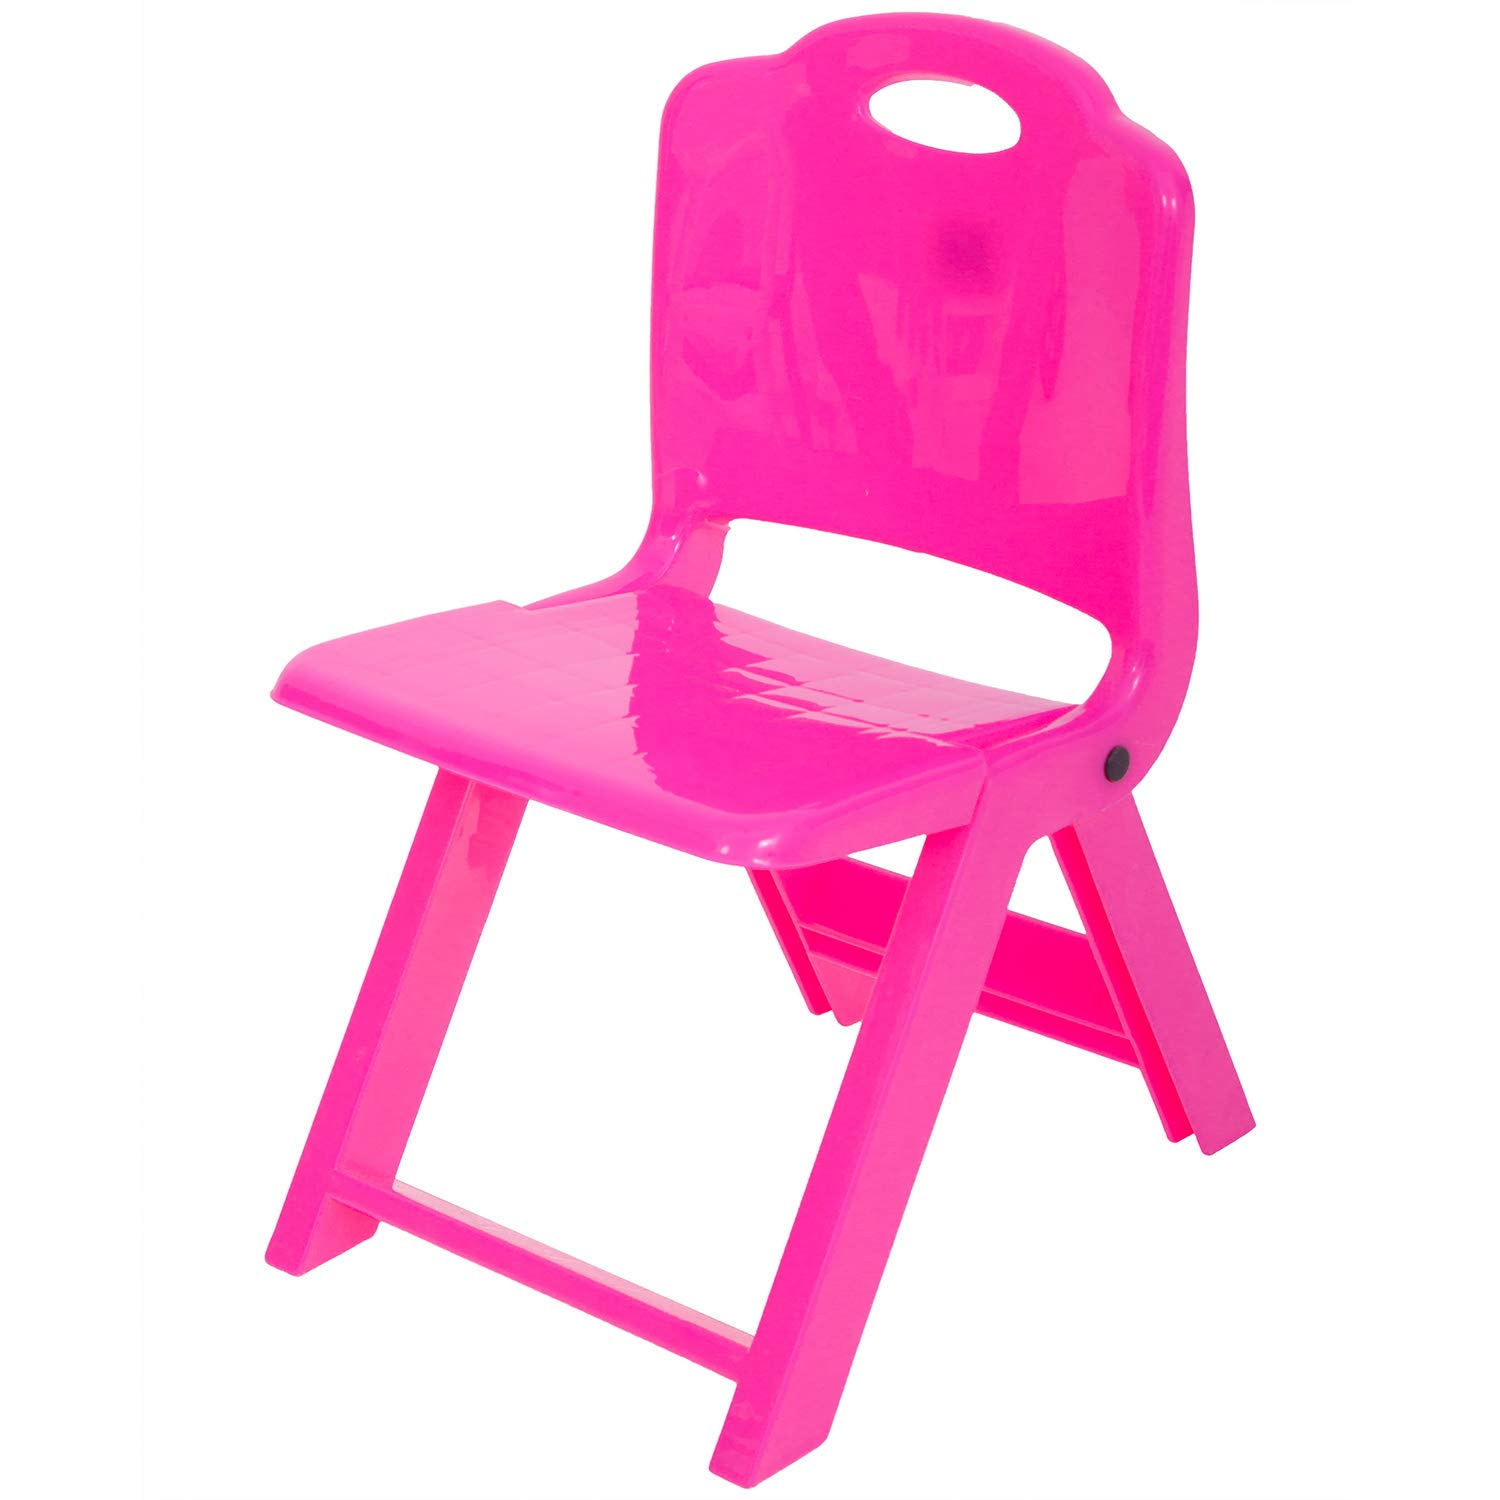 Baybee Foldable Baby Chair,Strong and Durable Plastic Chair for Kids/Plastic School Study Chair/Feeding Chair for Kids,Portable High Chair Weight Capacity 40 Kg (Pink)